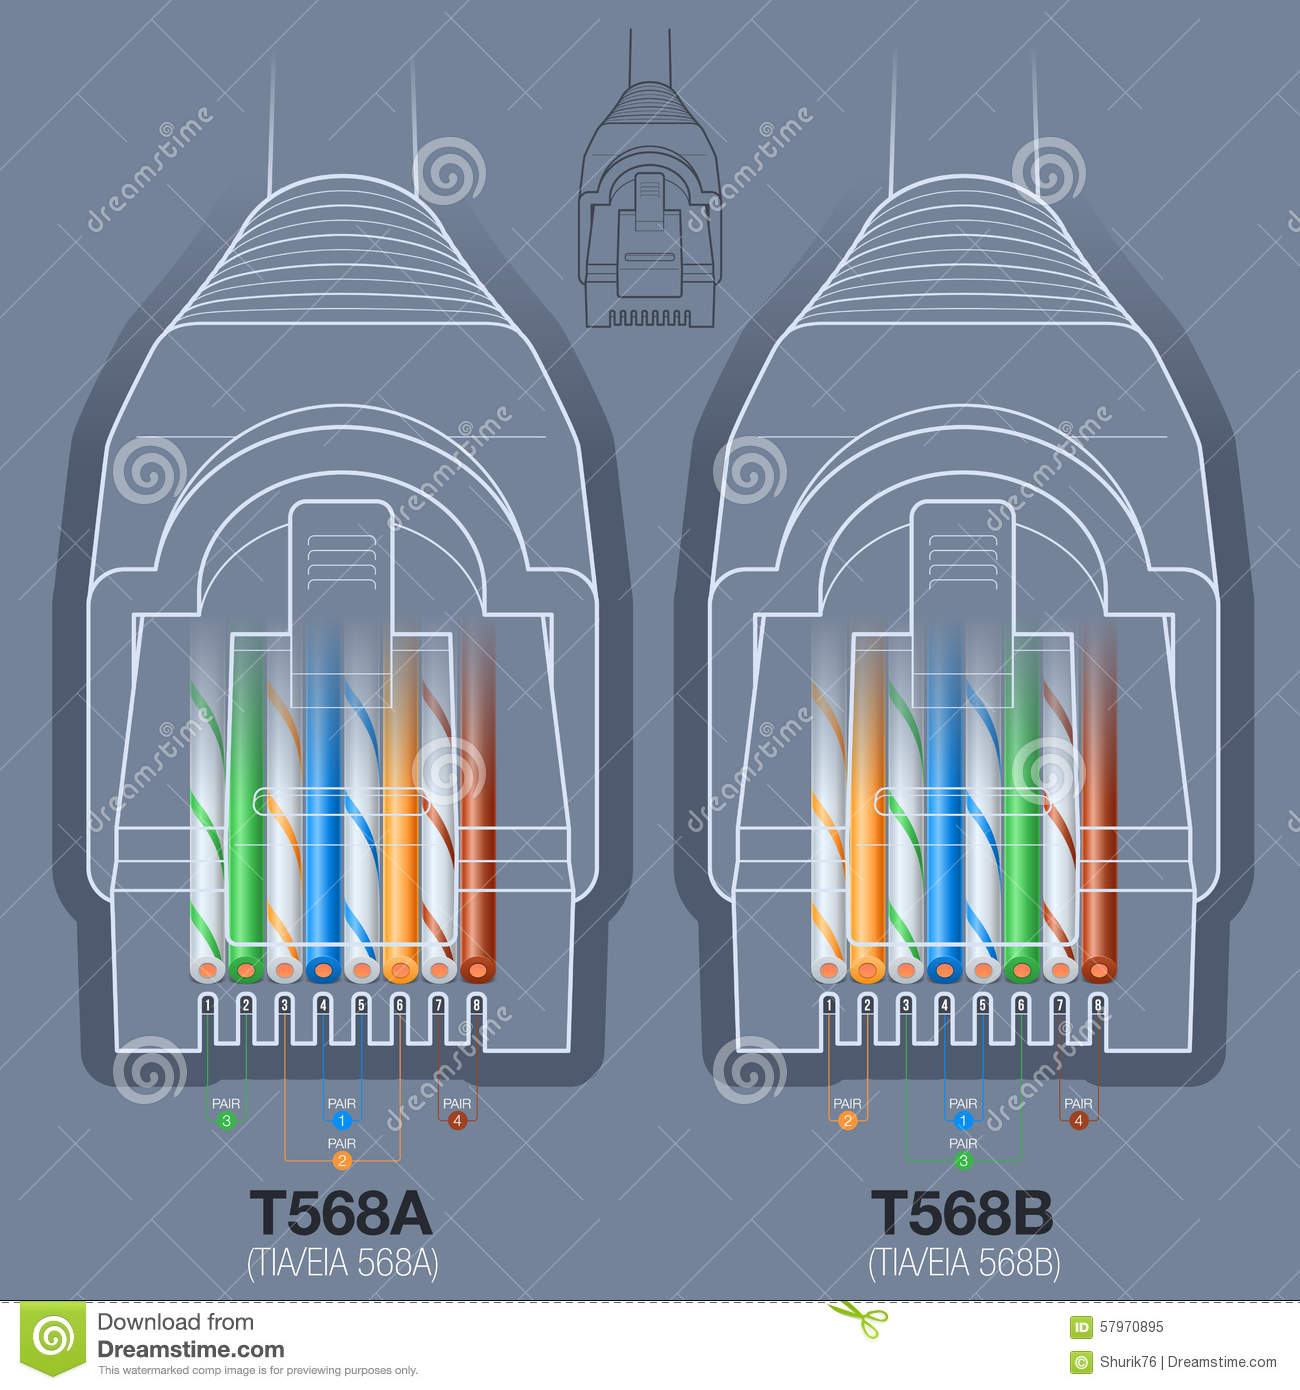 [DIAGRAM_4FR]  EY_8864] T568A Vs T568B Diagram Bing Images Free Diagram | T568a Cat5e Wiring Diagram |  | Www Mohammedshrine Librar Wiring 101